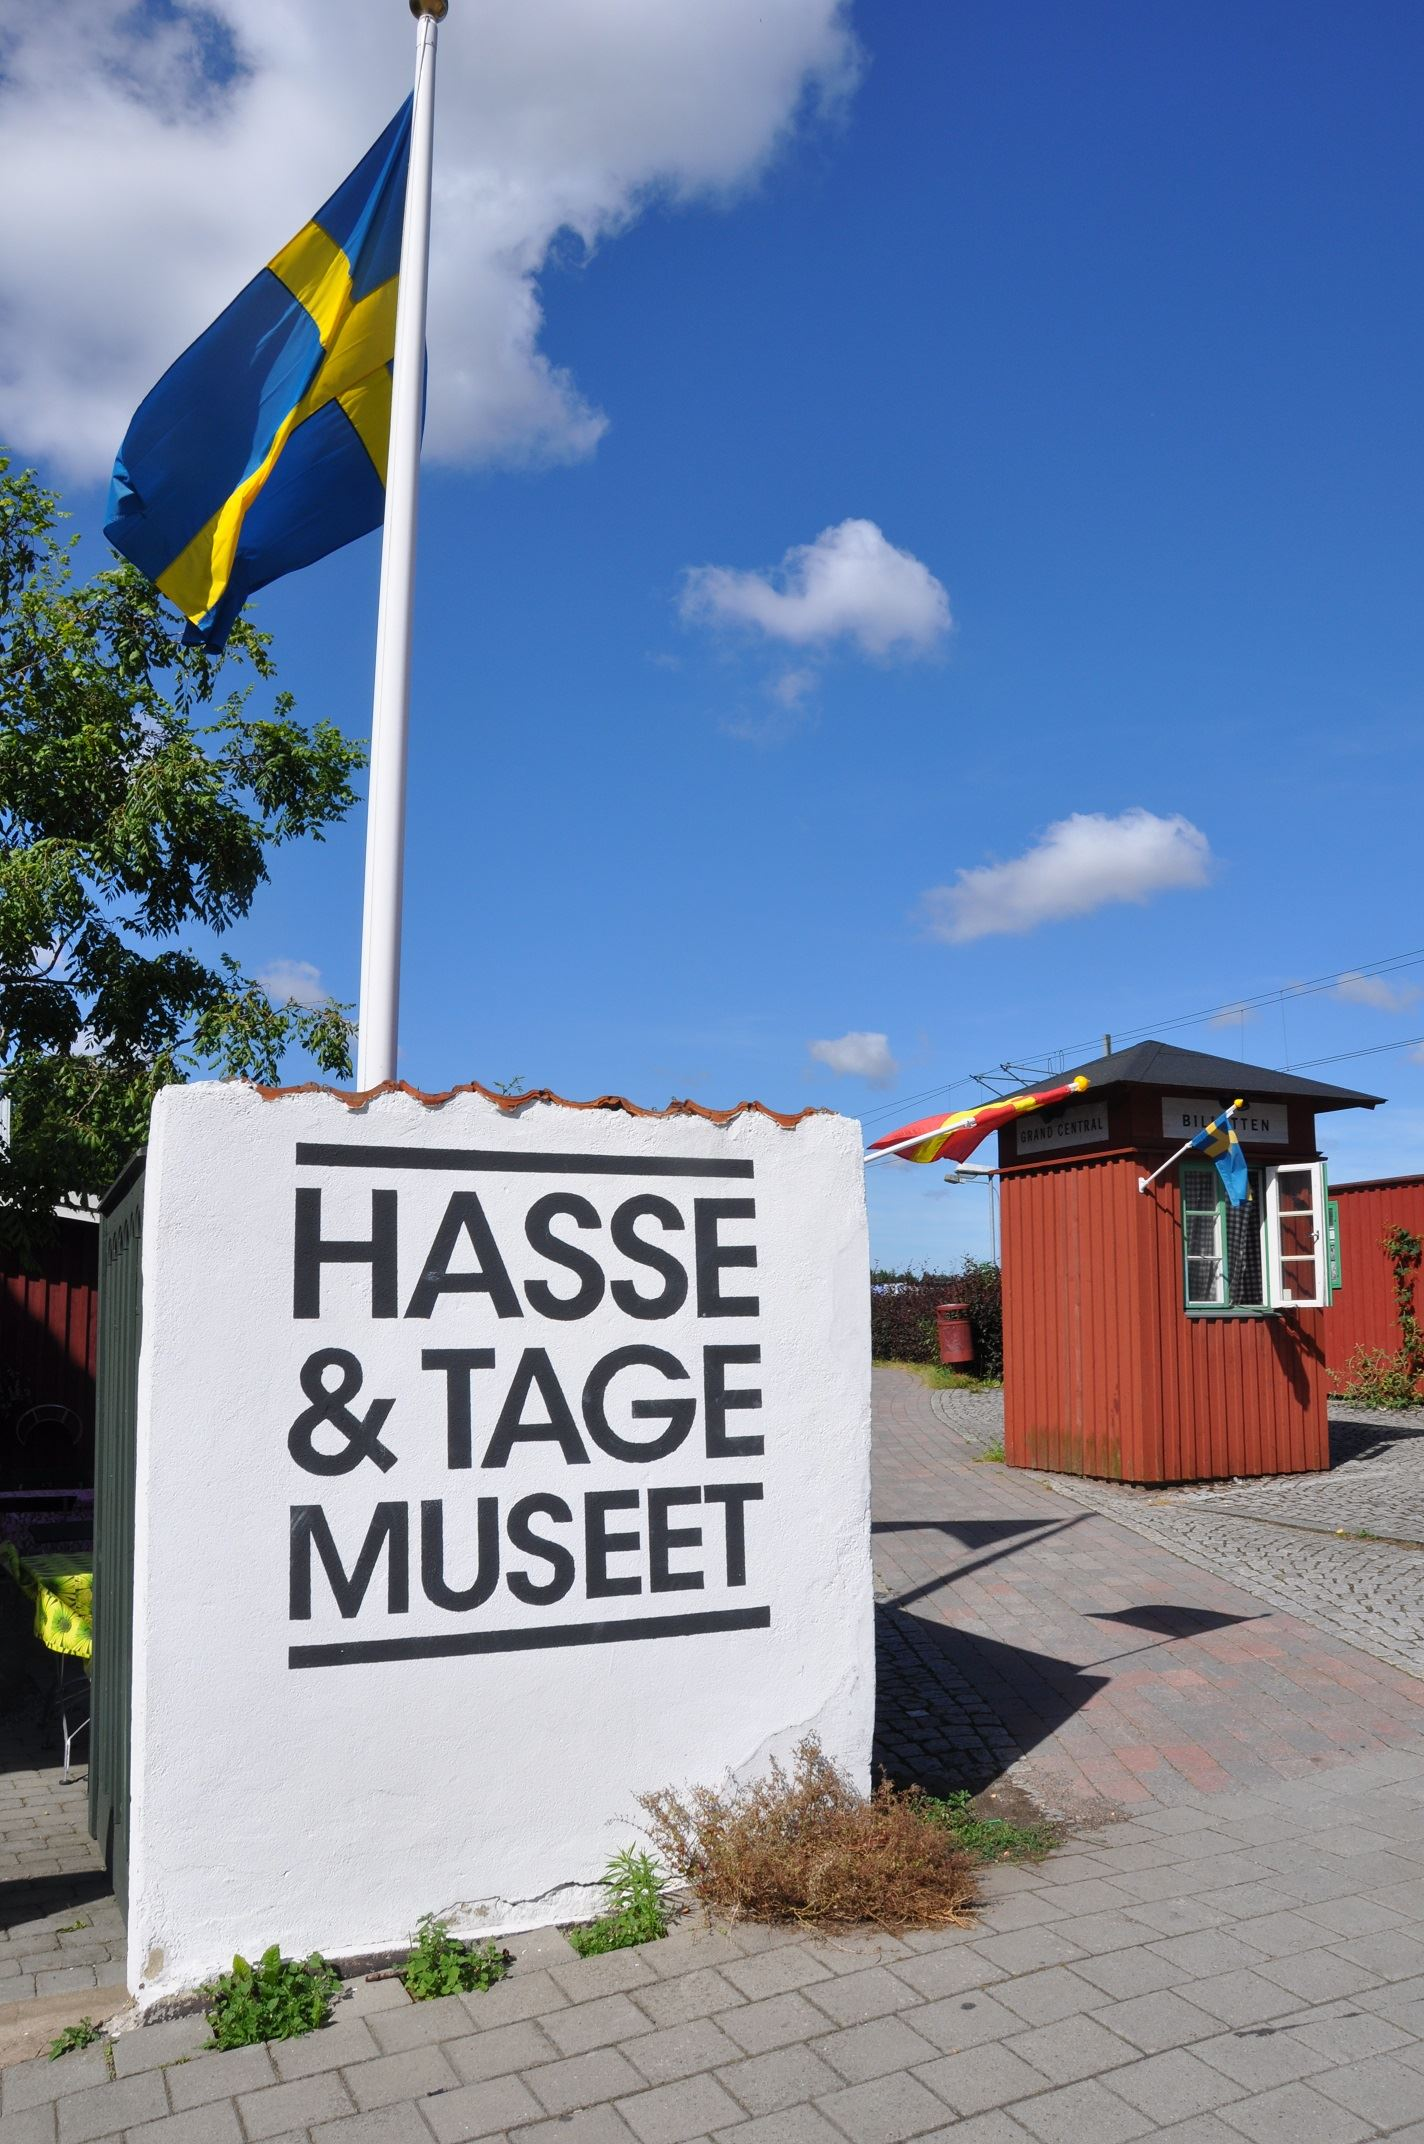 Foto: Elin Andersson, Hasse & Tage-muséet